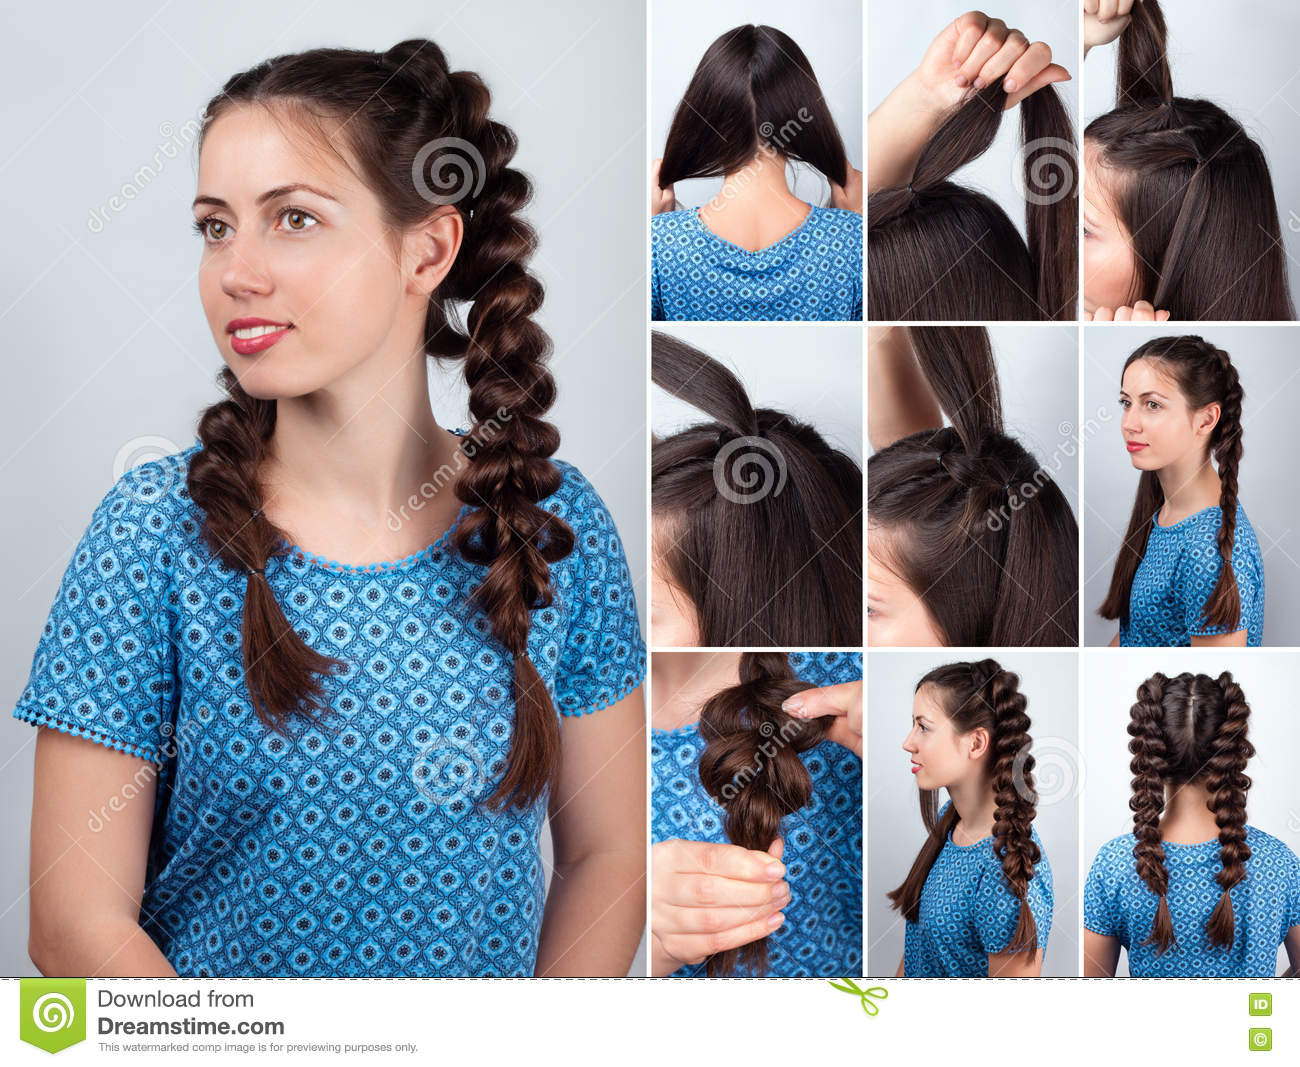 Hairstyles Braids Download: Easy Hairstyle Braids For Long Hair Tutorial Stock Image